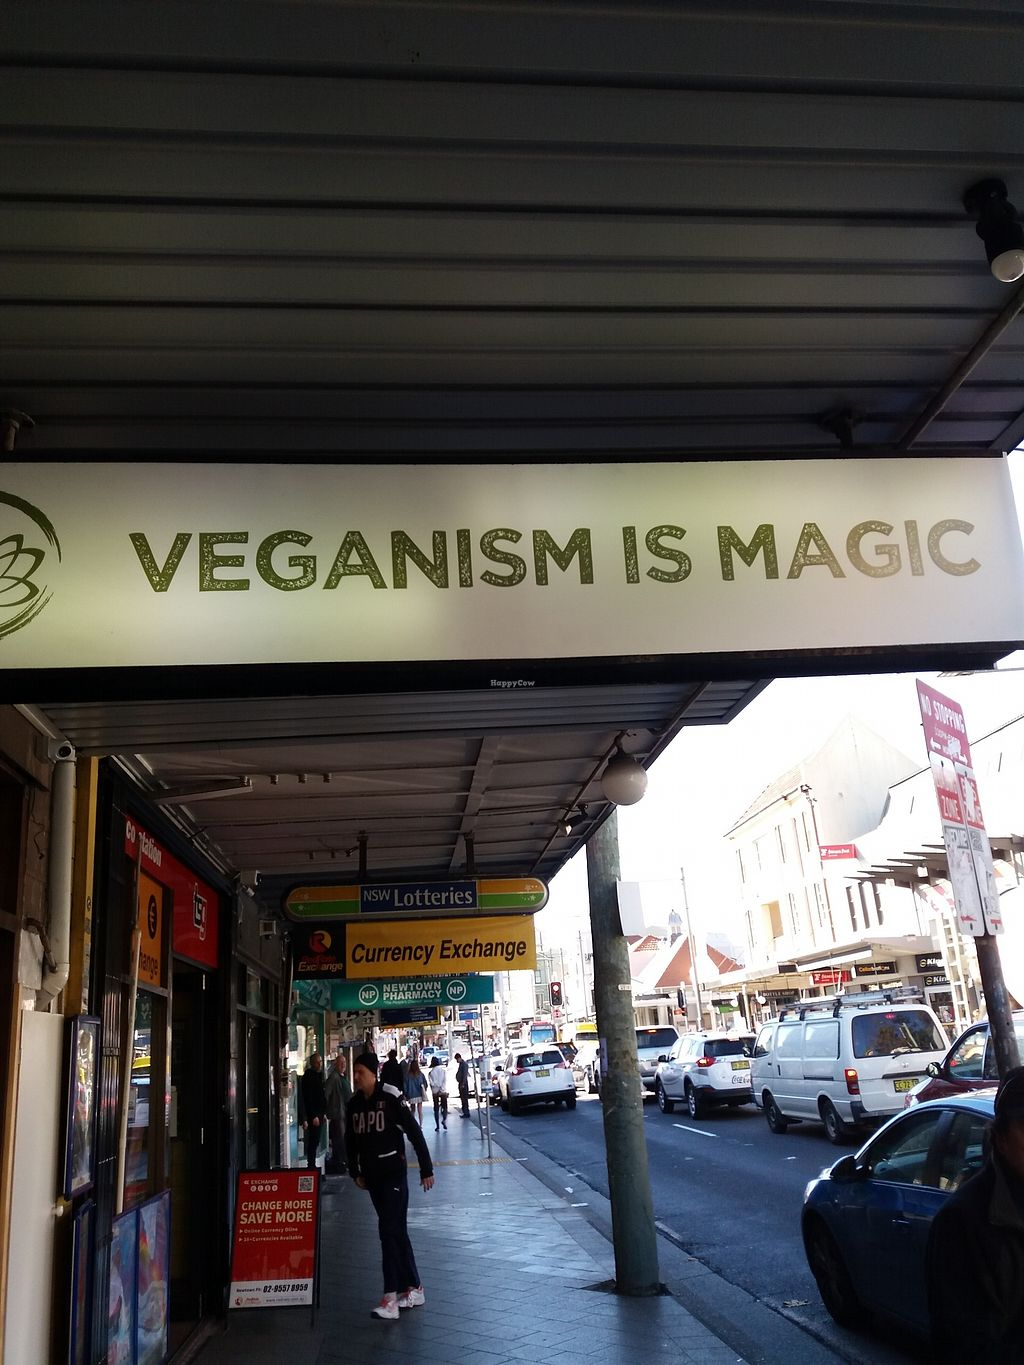 """Photo of Golden Lotus Vegan  by <a href=""""/members/profile/veganvirtues"""">veganvirtues</a> <br/>Outside door signage Great <br/> July 7, 2017  - <a href='/contact/abuse/image/60395/277366'>Report</a>"""